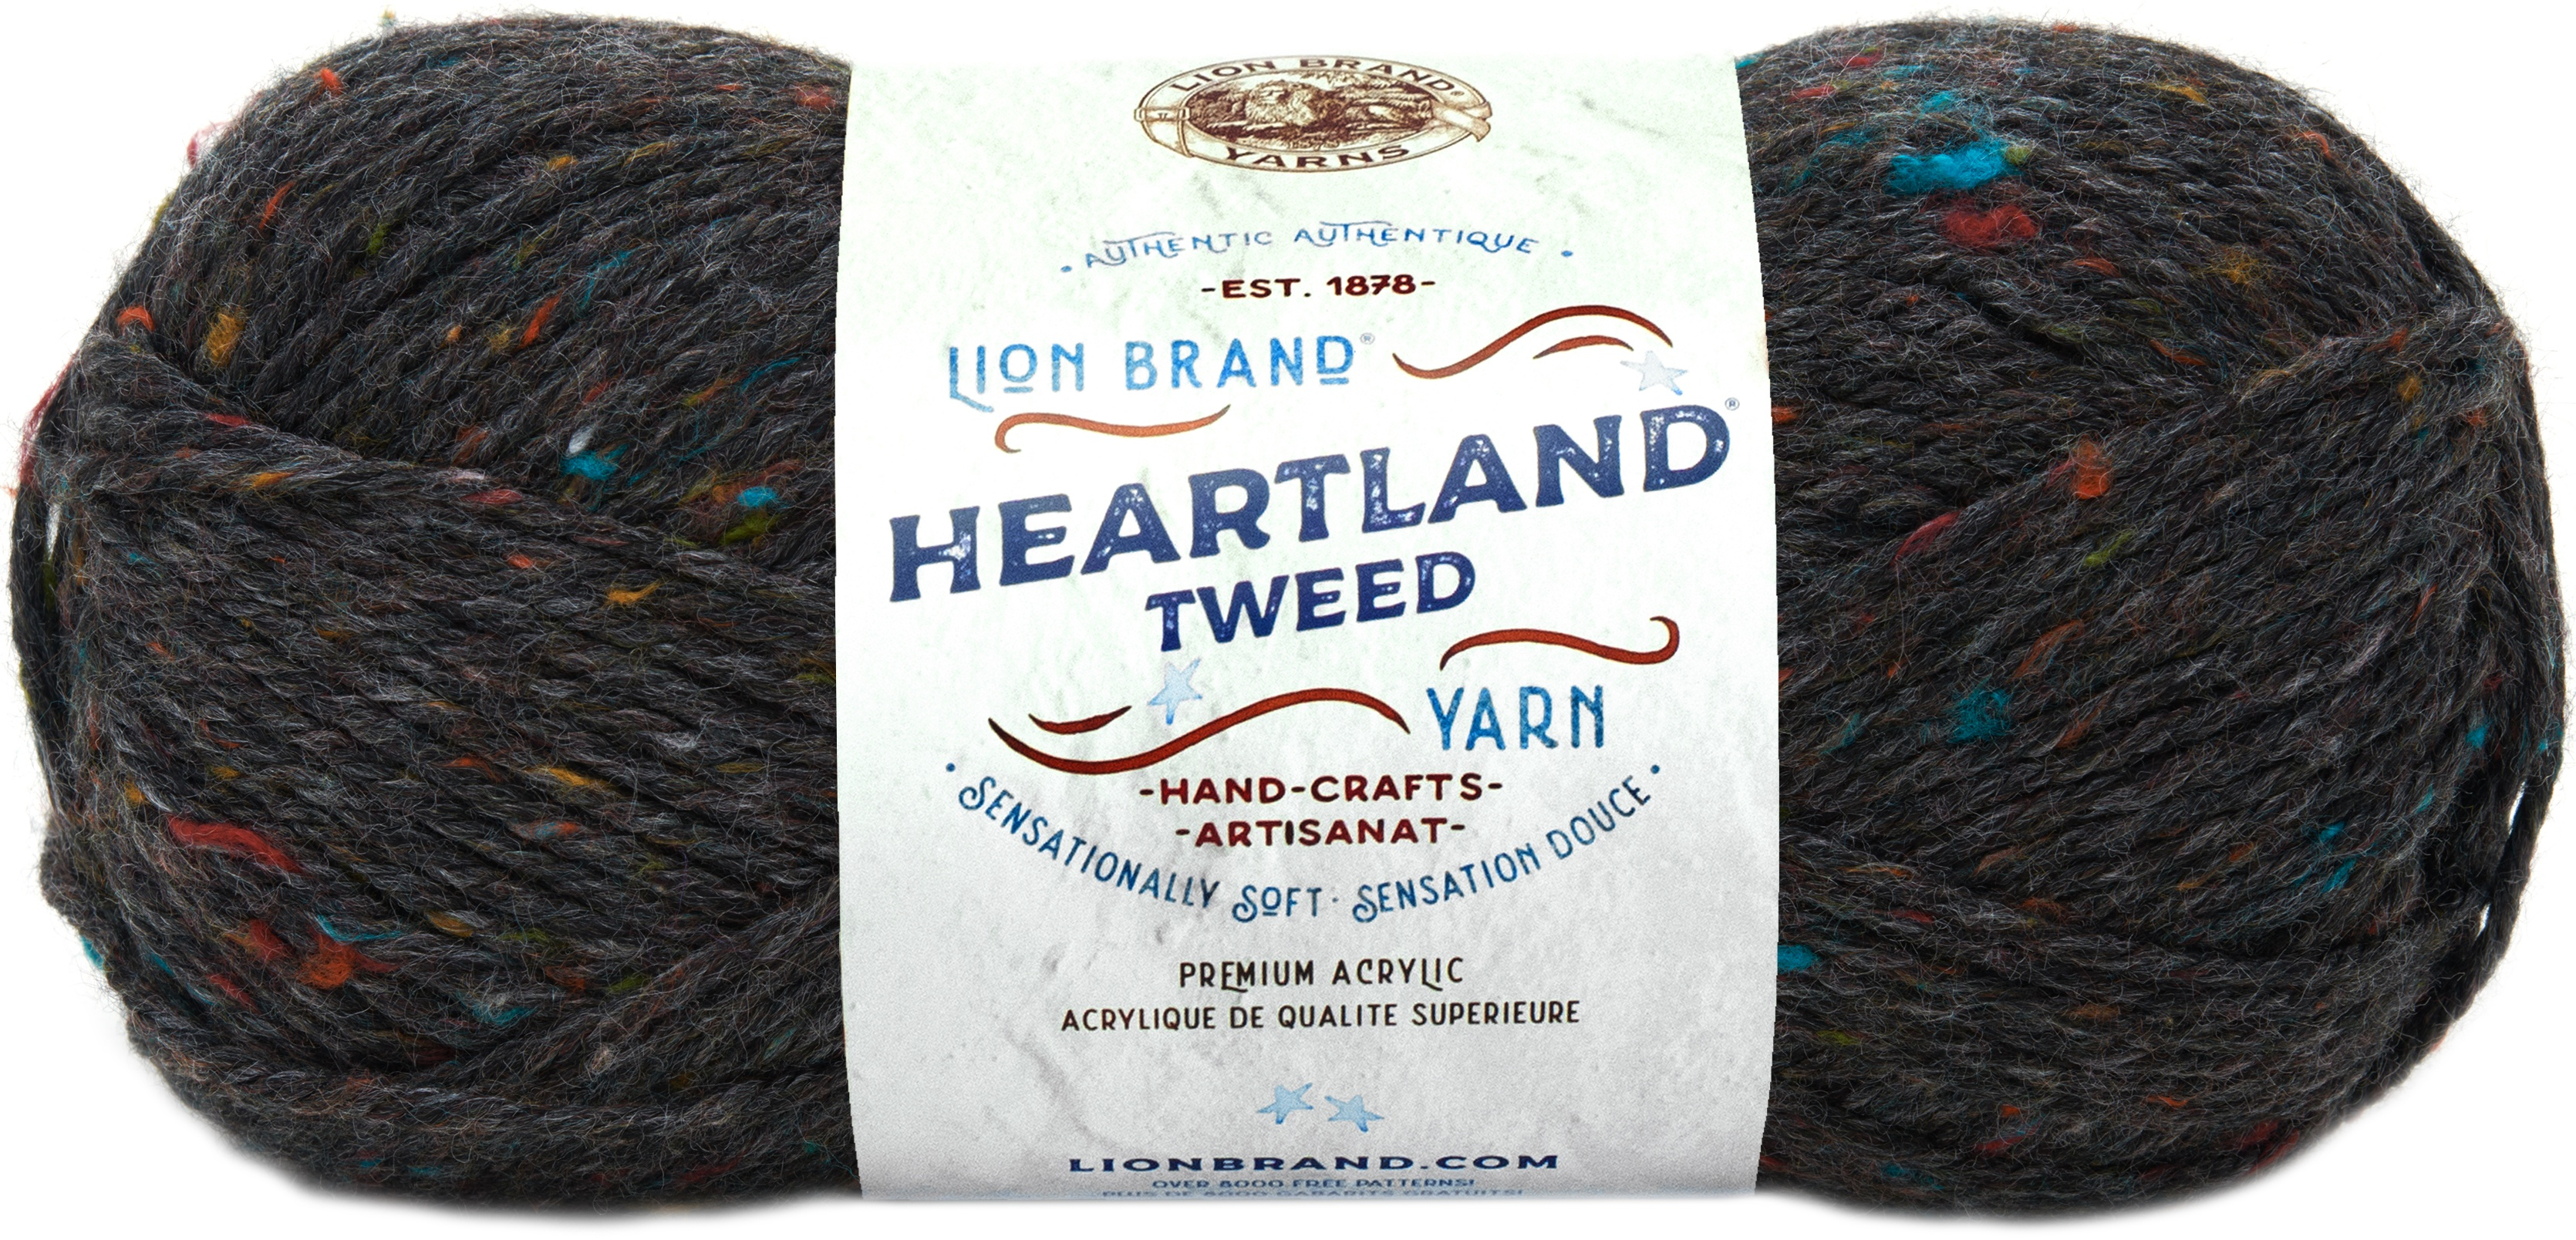 Lion Brand Yarn 136-353 Heartland Yarn Black Canyon Tweed Pack of 3 skeins